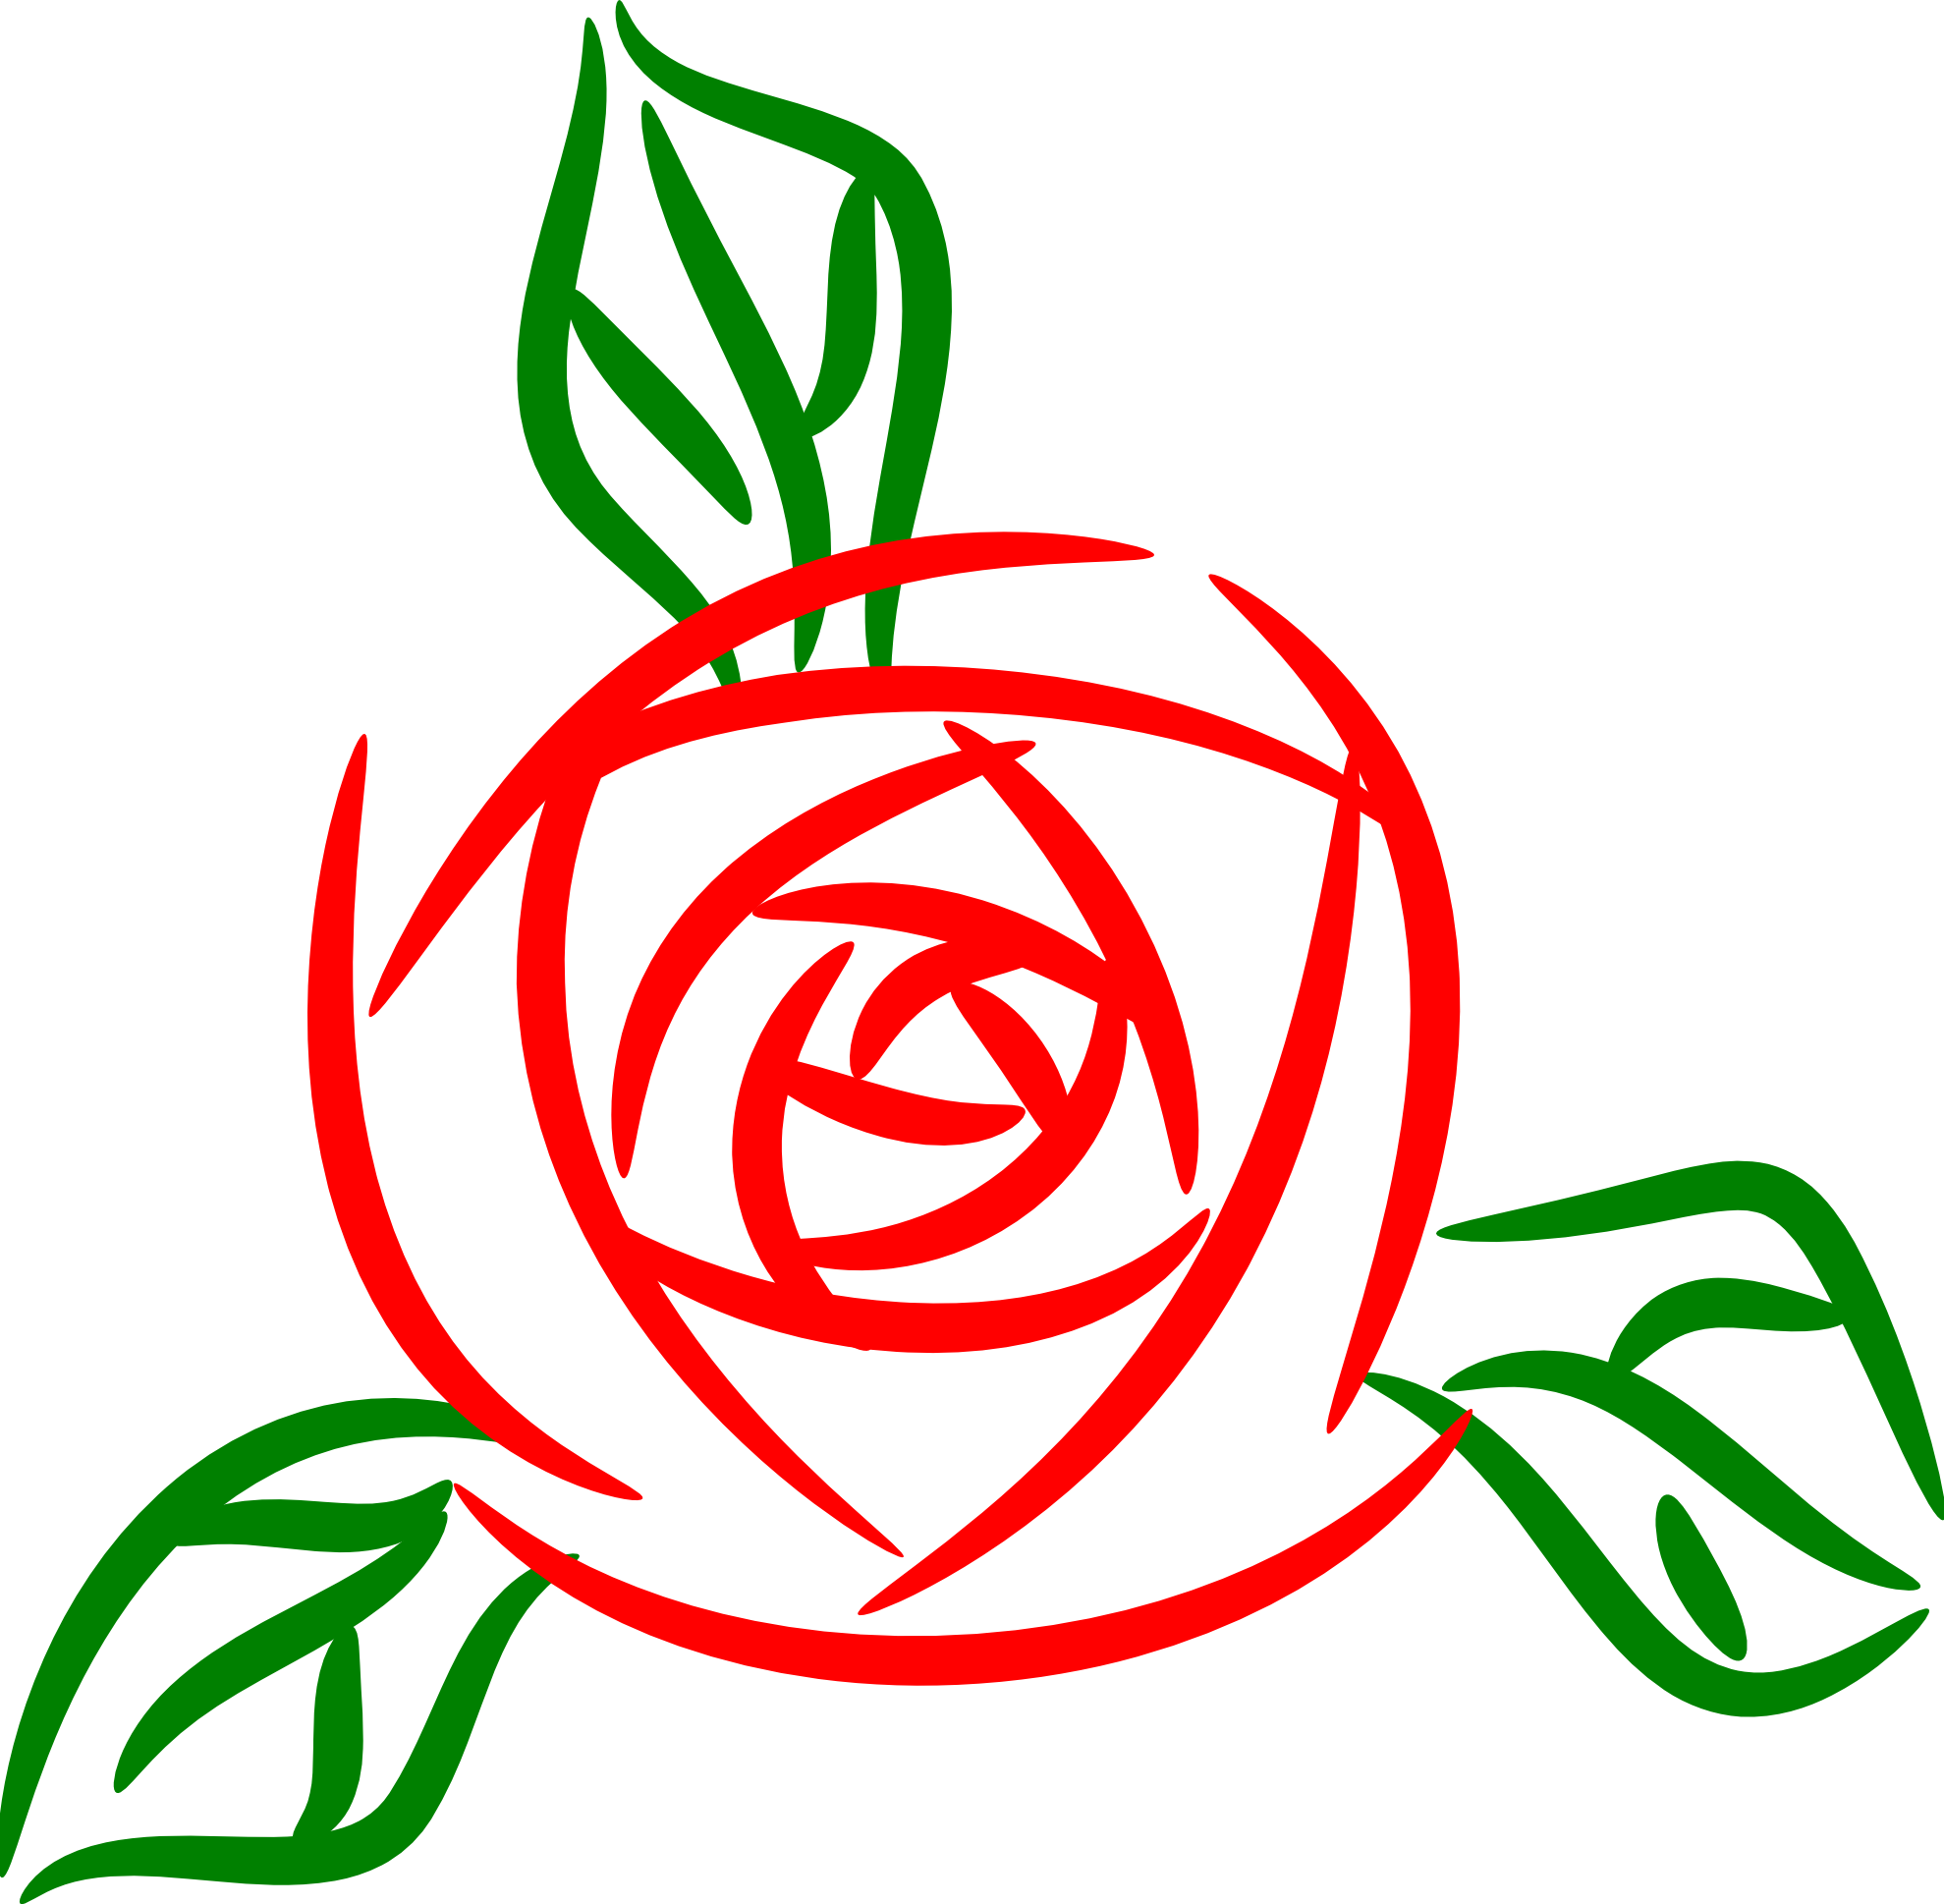 Rose Vector Art - Cliparts.co